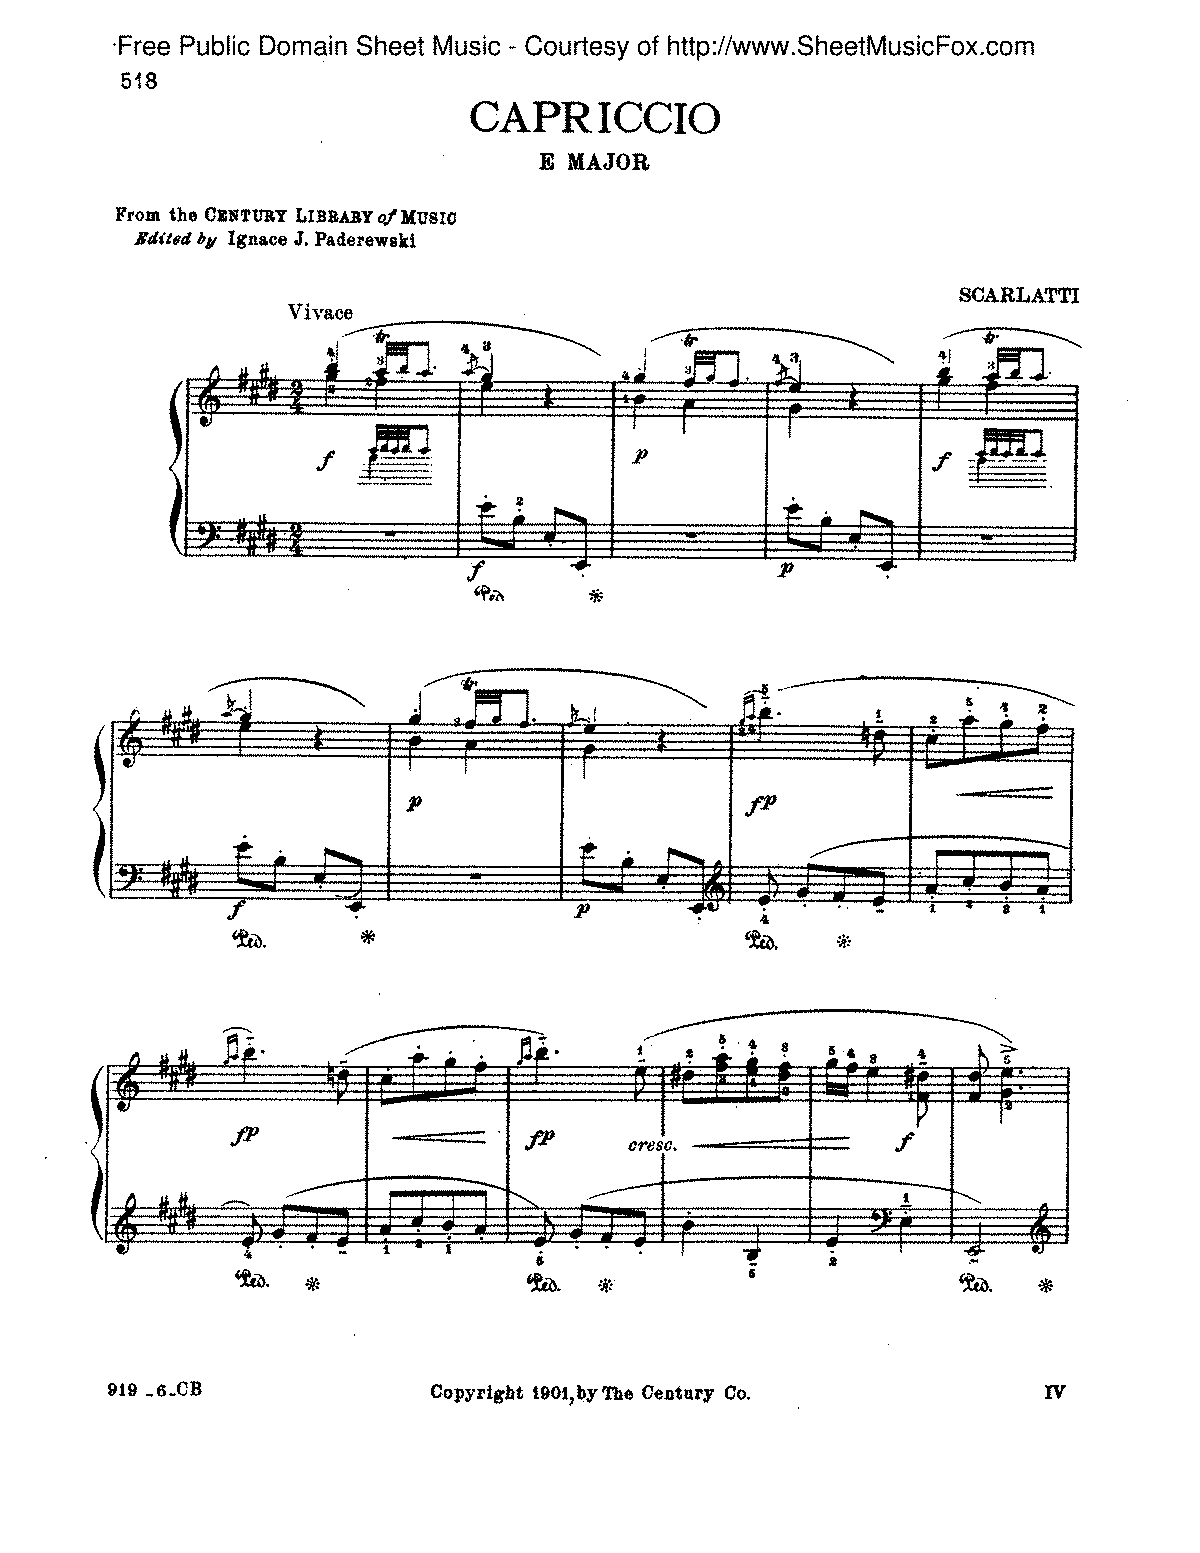 Scarlatti - Capriccio in E major.pdf